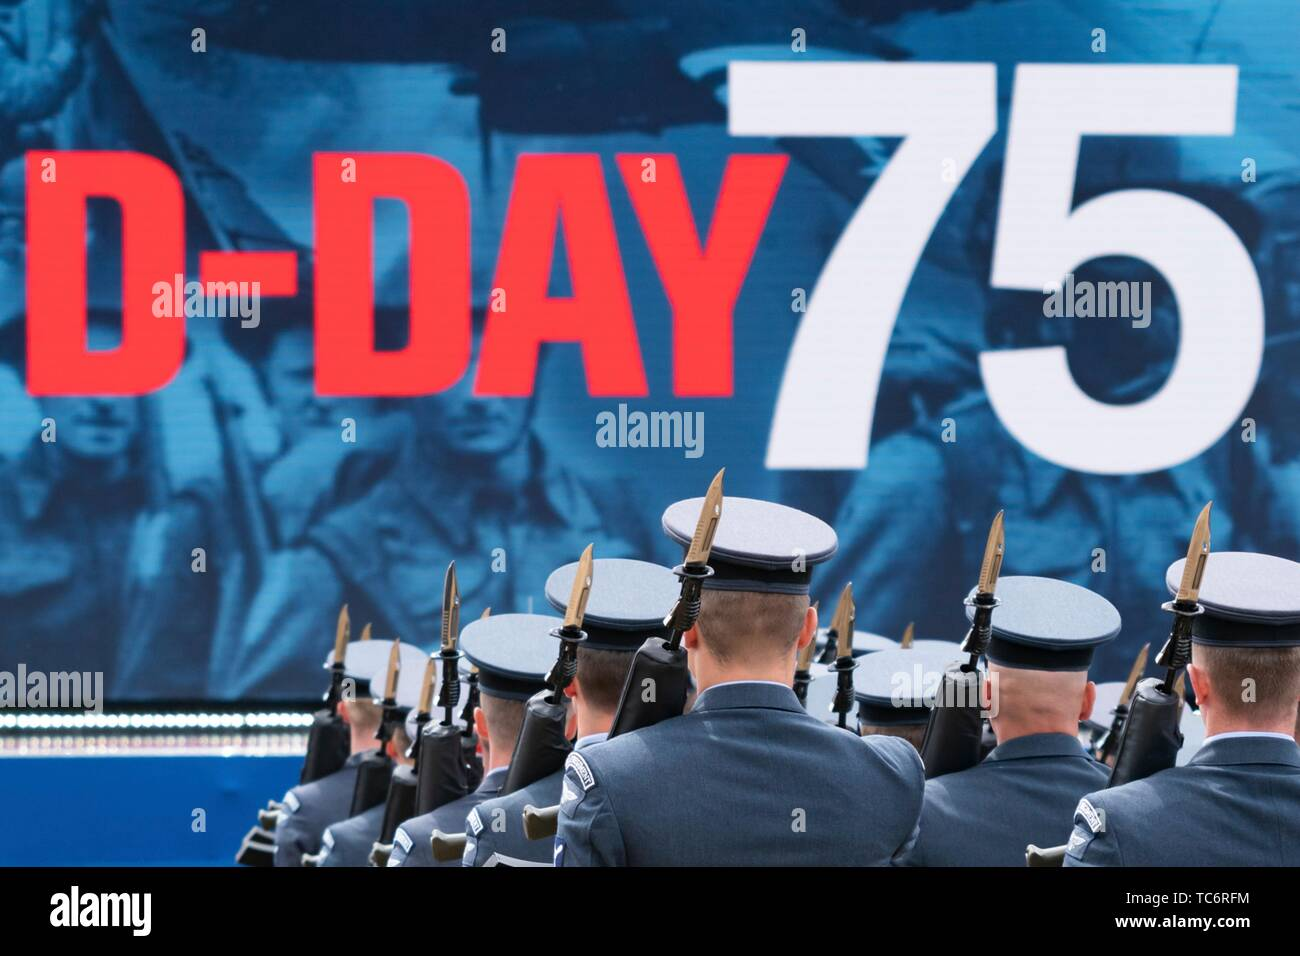 Portsmouth, UK. 05th June, 2019. Military honor guards during an event to marking the 75th anniversary of D-Day at the Southsea Common June 5, 2019 in Portsmouth, England. World leaders gathered on the south coast of England where troops departed for the D-Day assault 75-years-ago. Credit: Planetpix/Alamy Live News - Stock Image